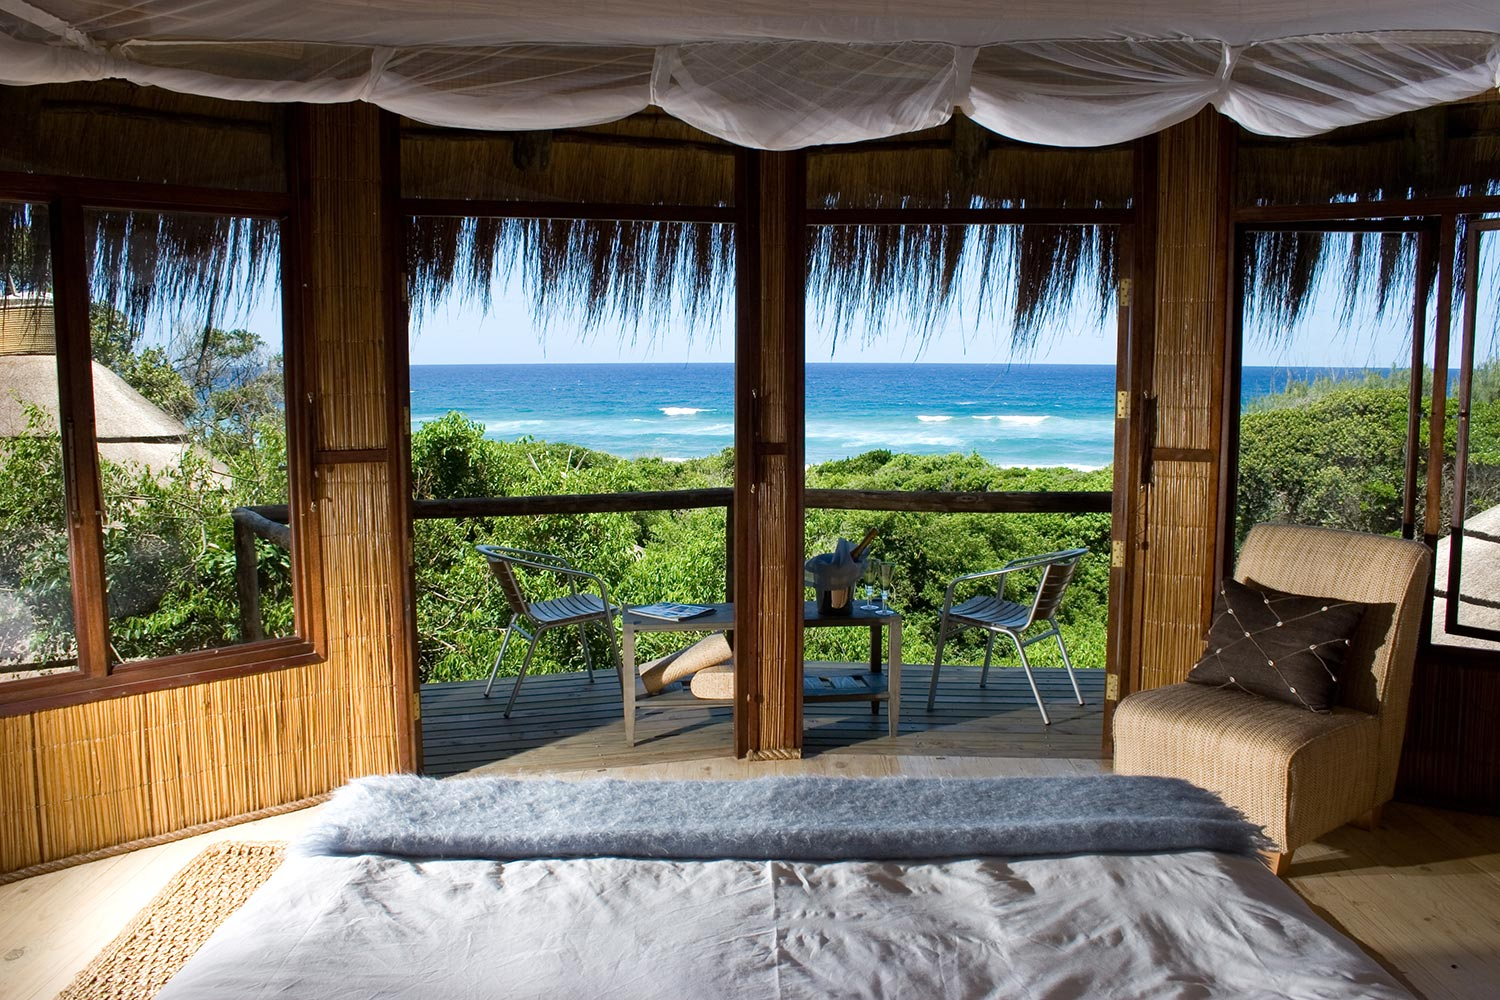 Luxury Beach Resort - Thonga Bedroom Ocean View